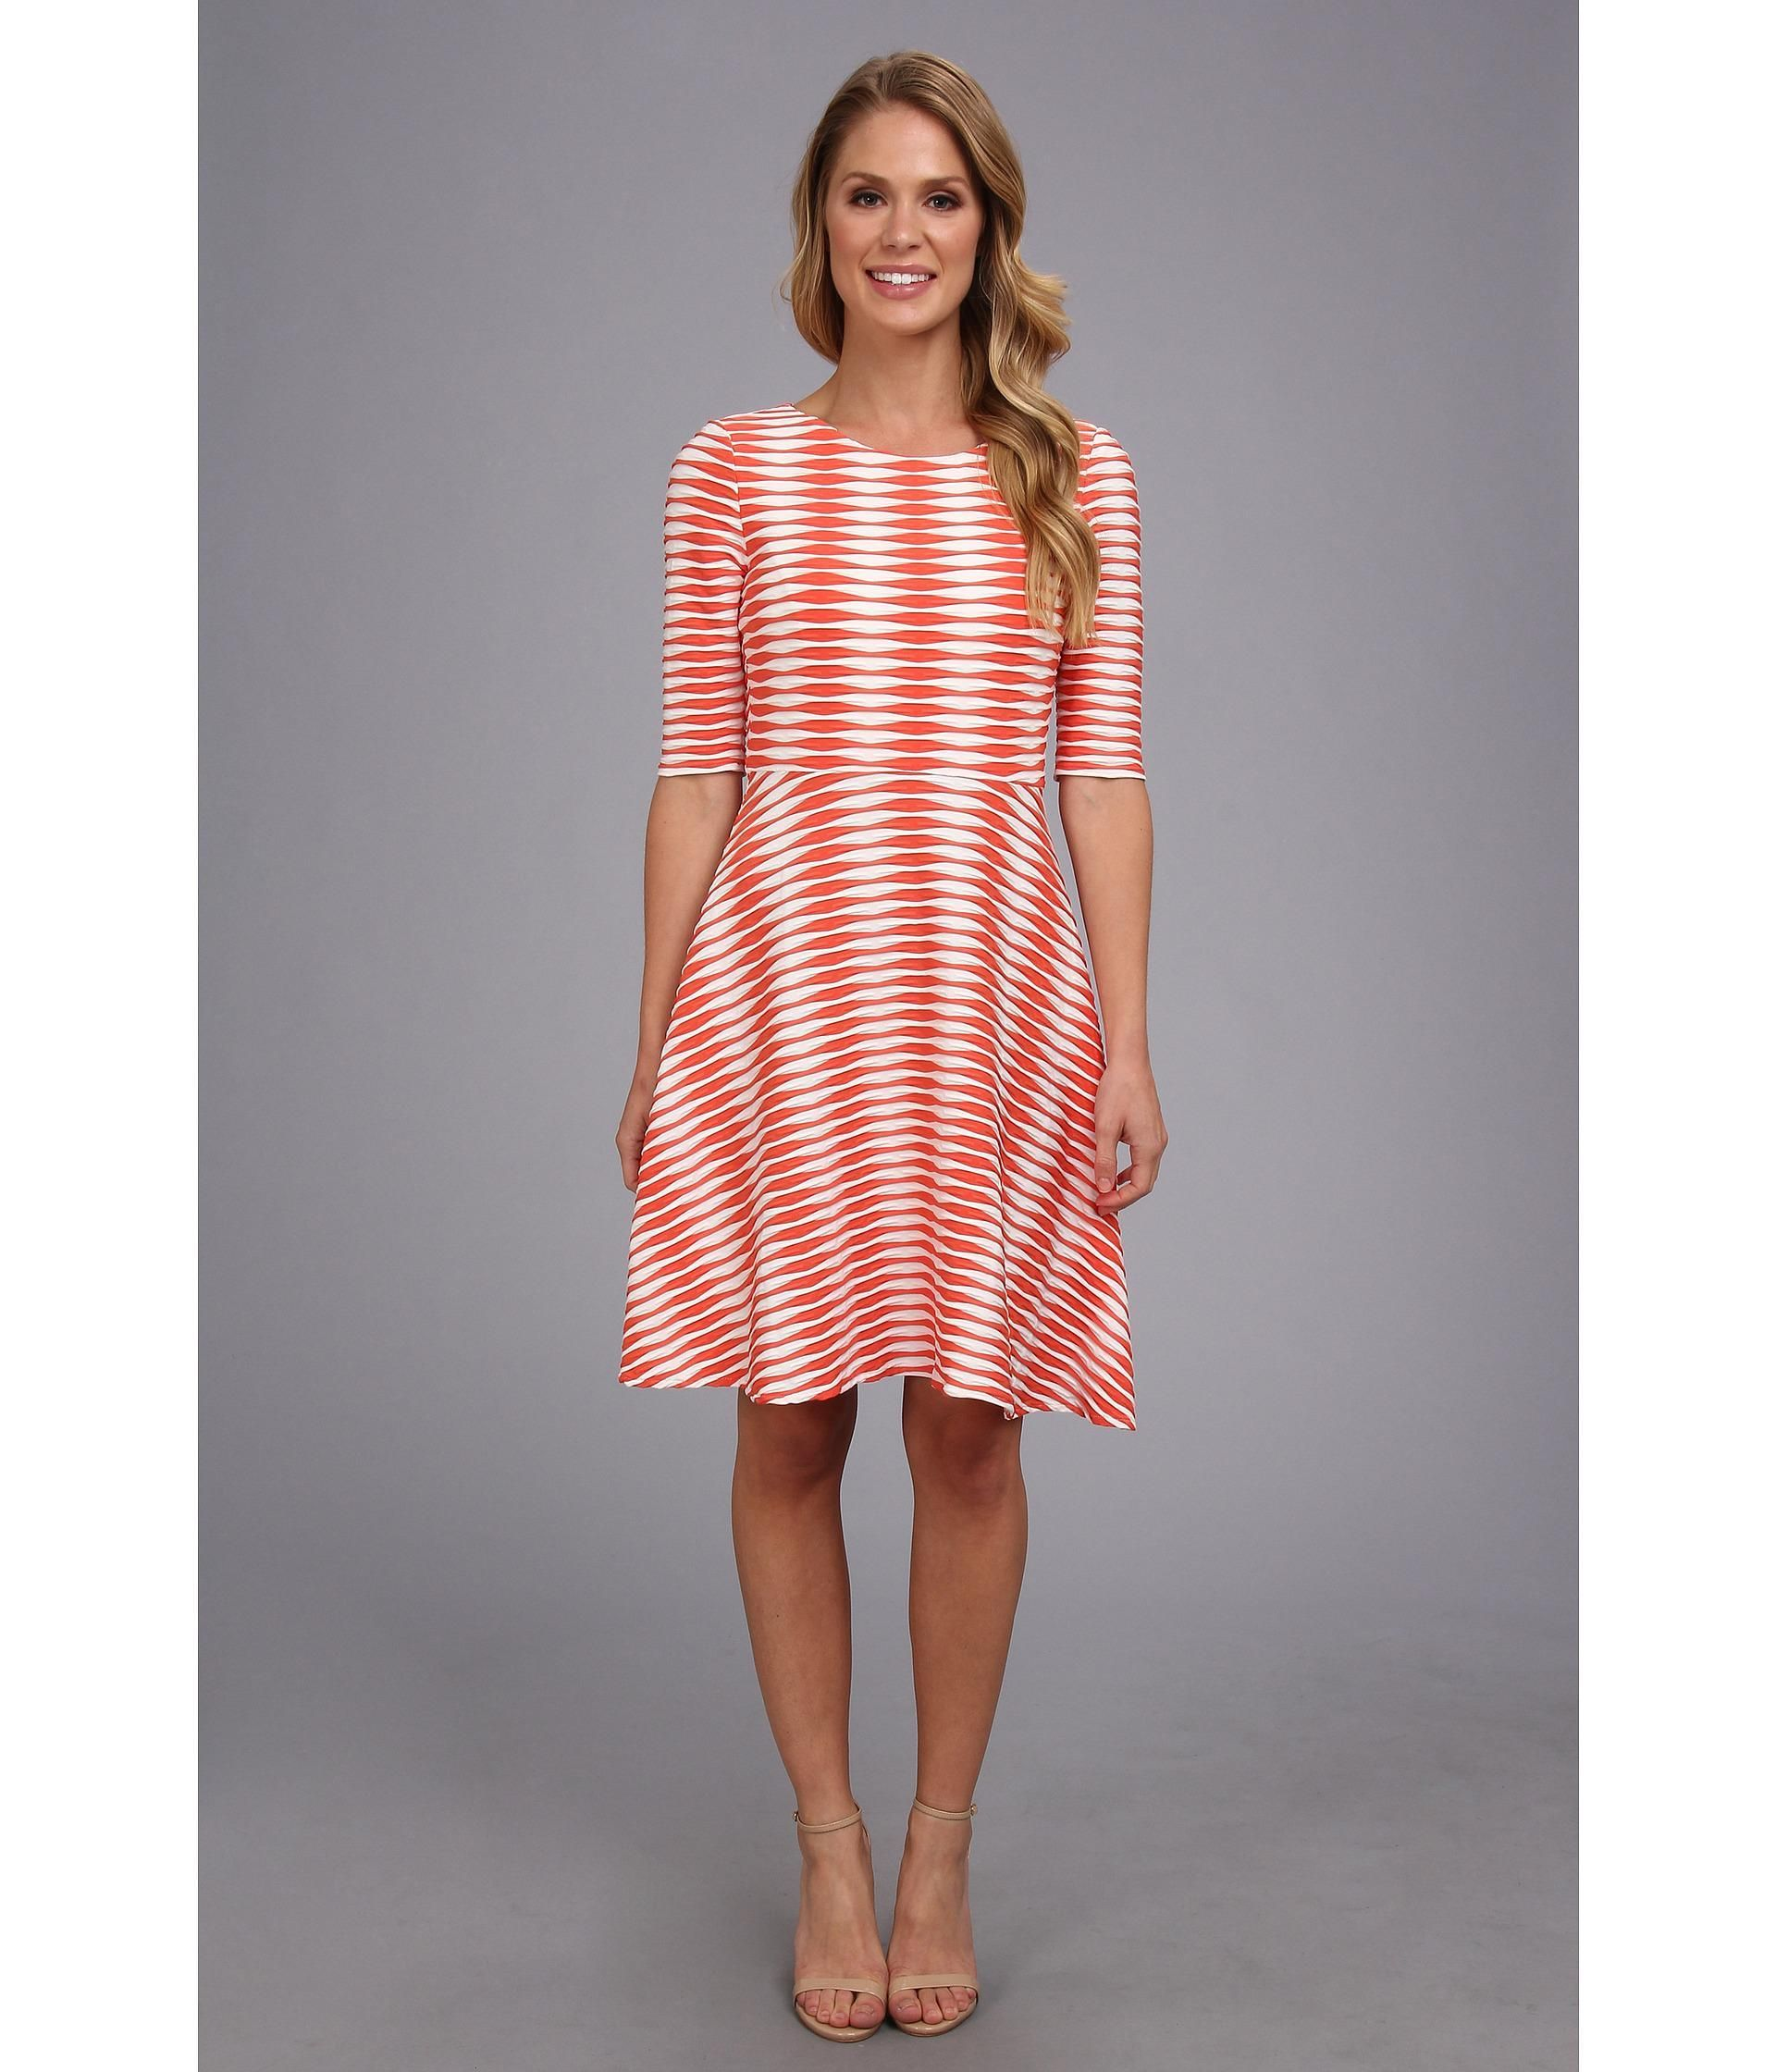 Add a fun, chic dress to your wardrobe with the Donna Morgan™ Wavy ...